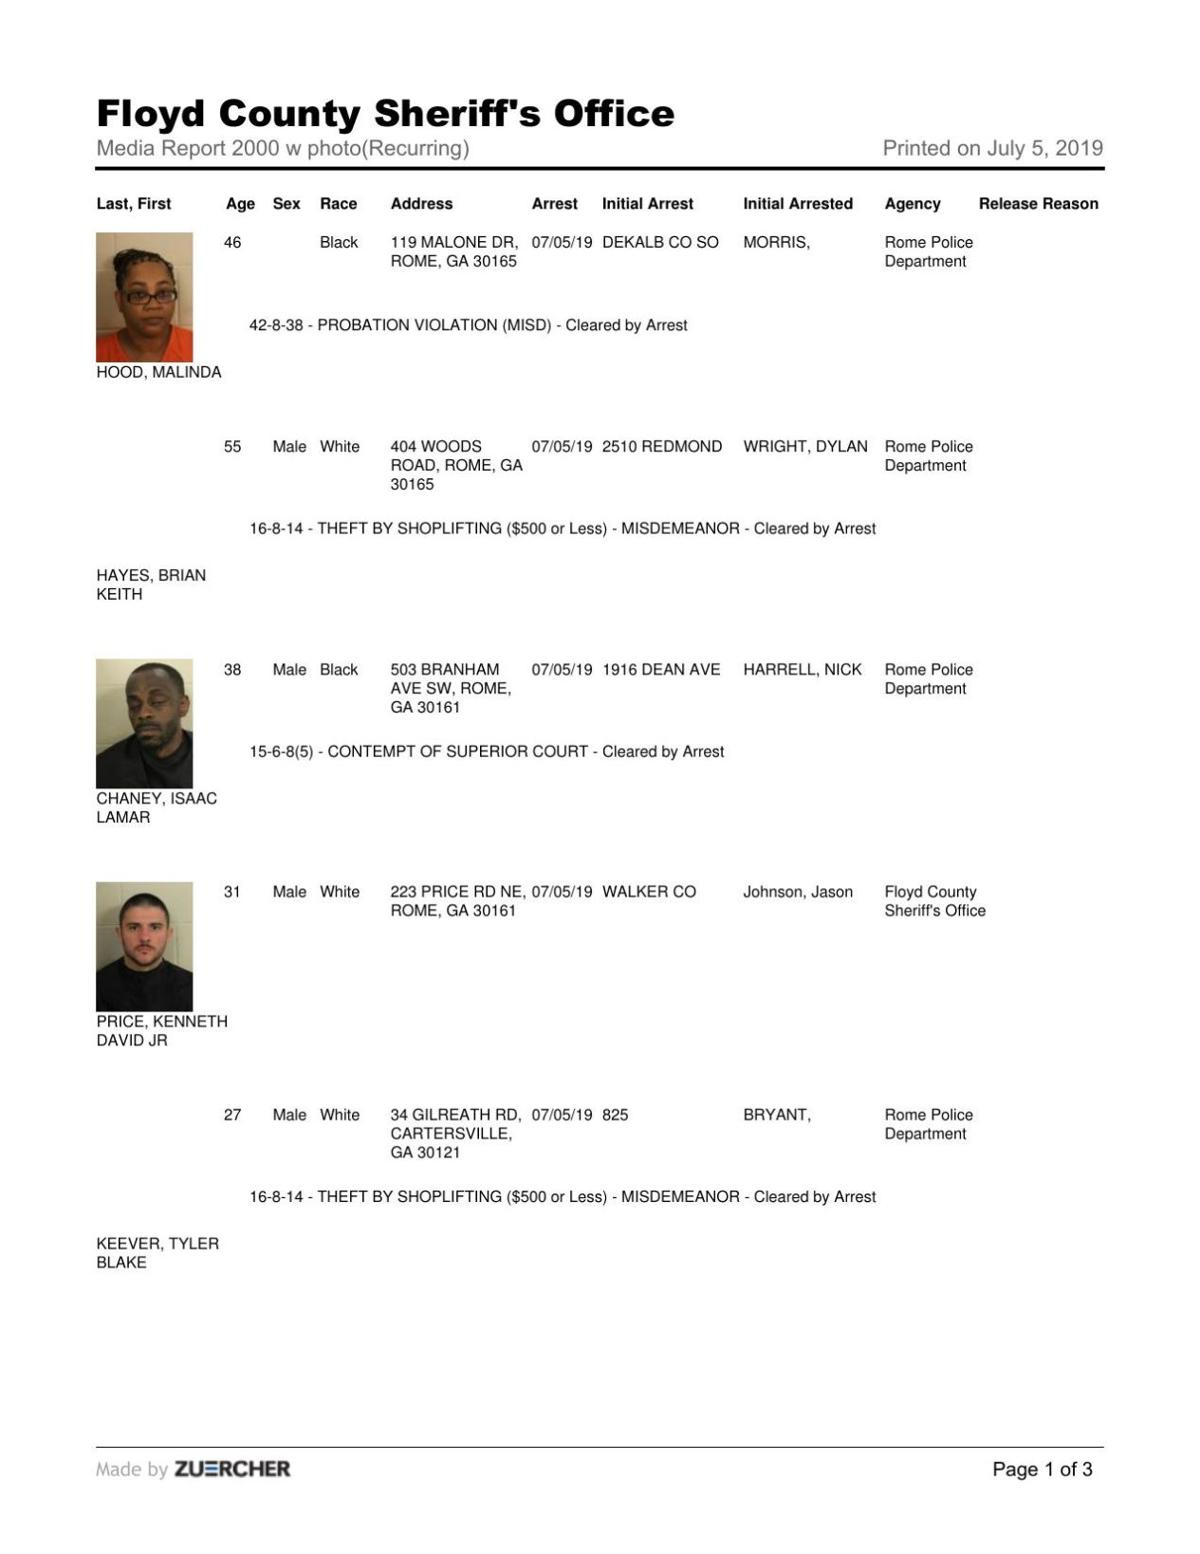 Floyd County Jail report for Friday, July 5